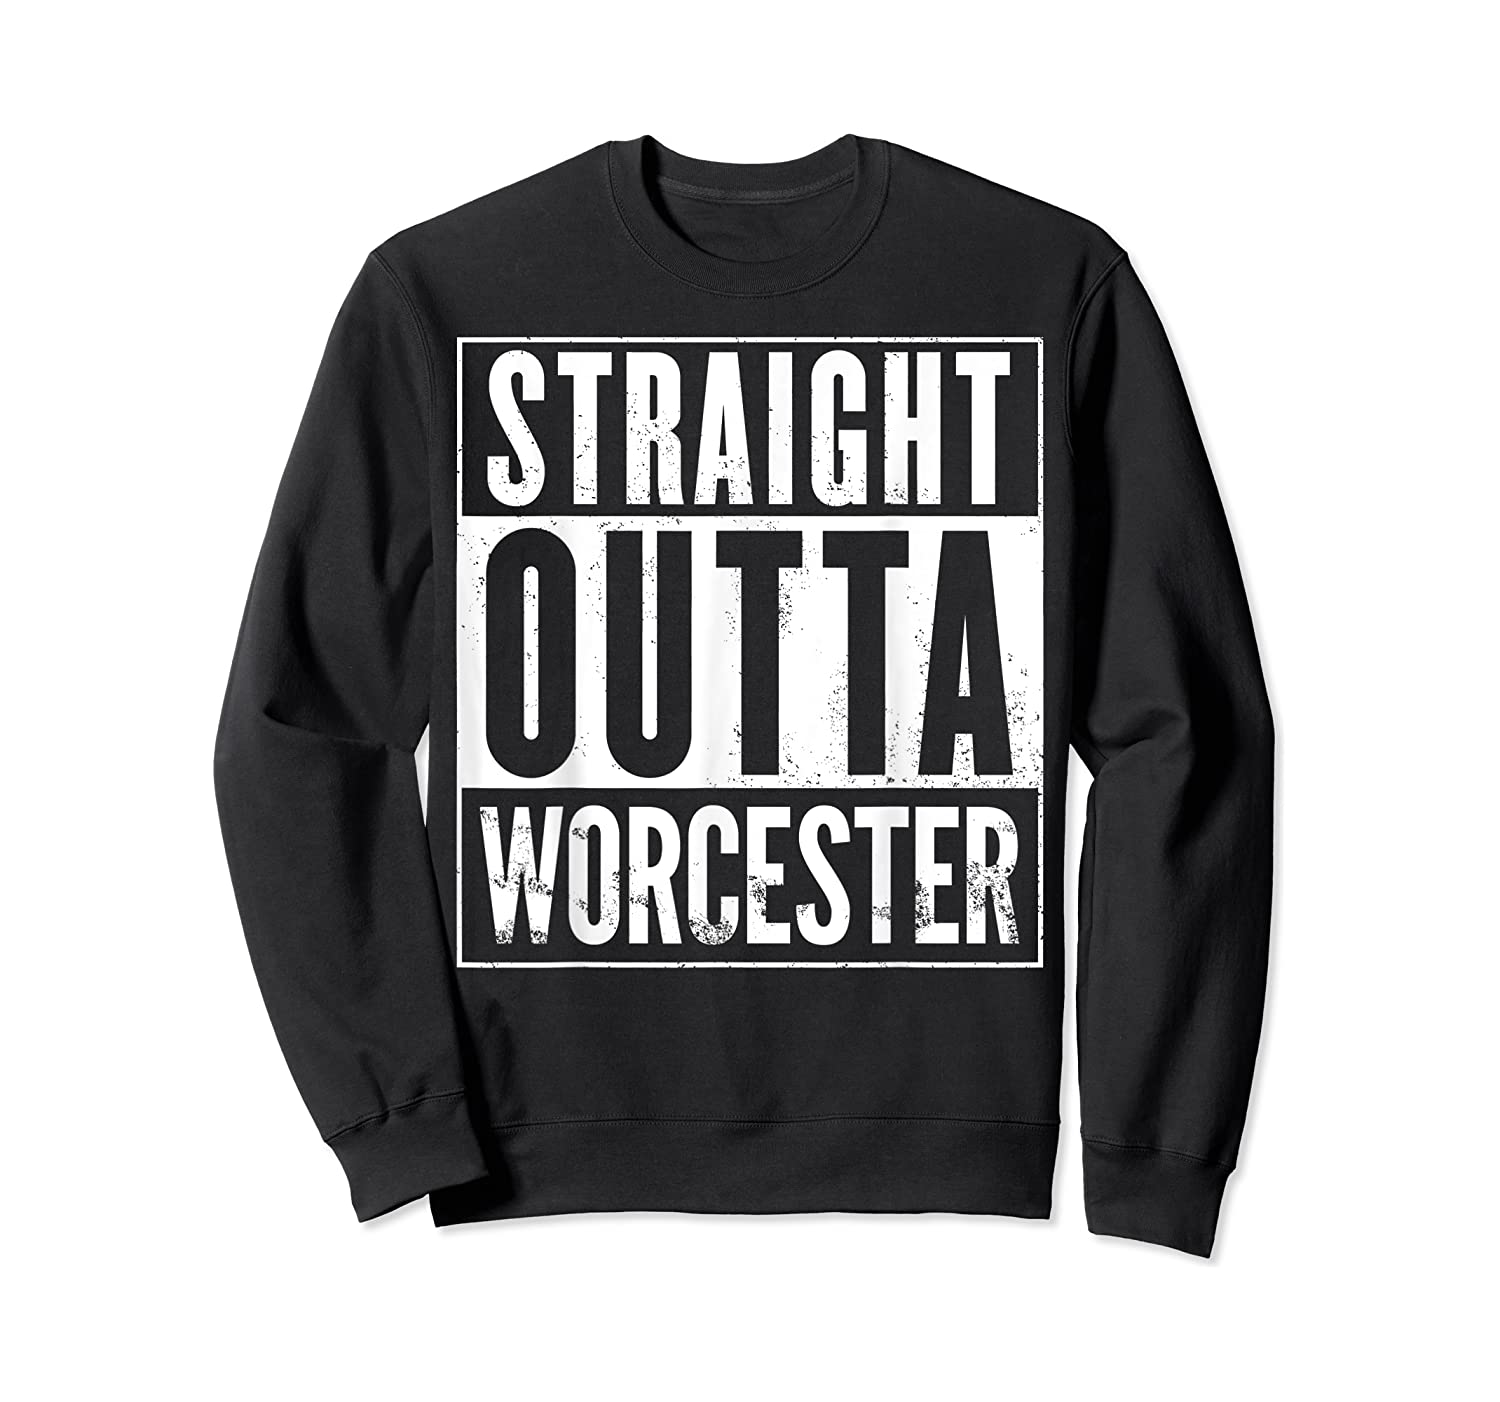 Straight Outta Worcester Distressed Vintage Funny Shirts Crewneck Sweater